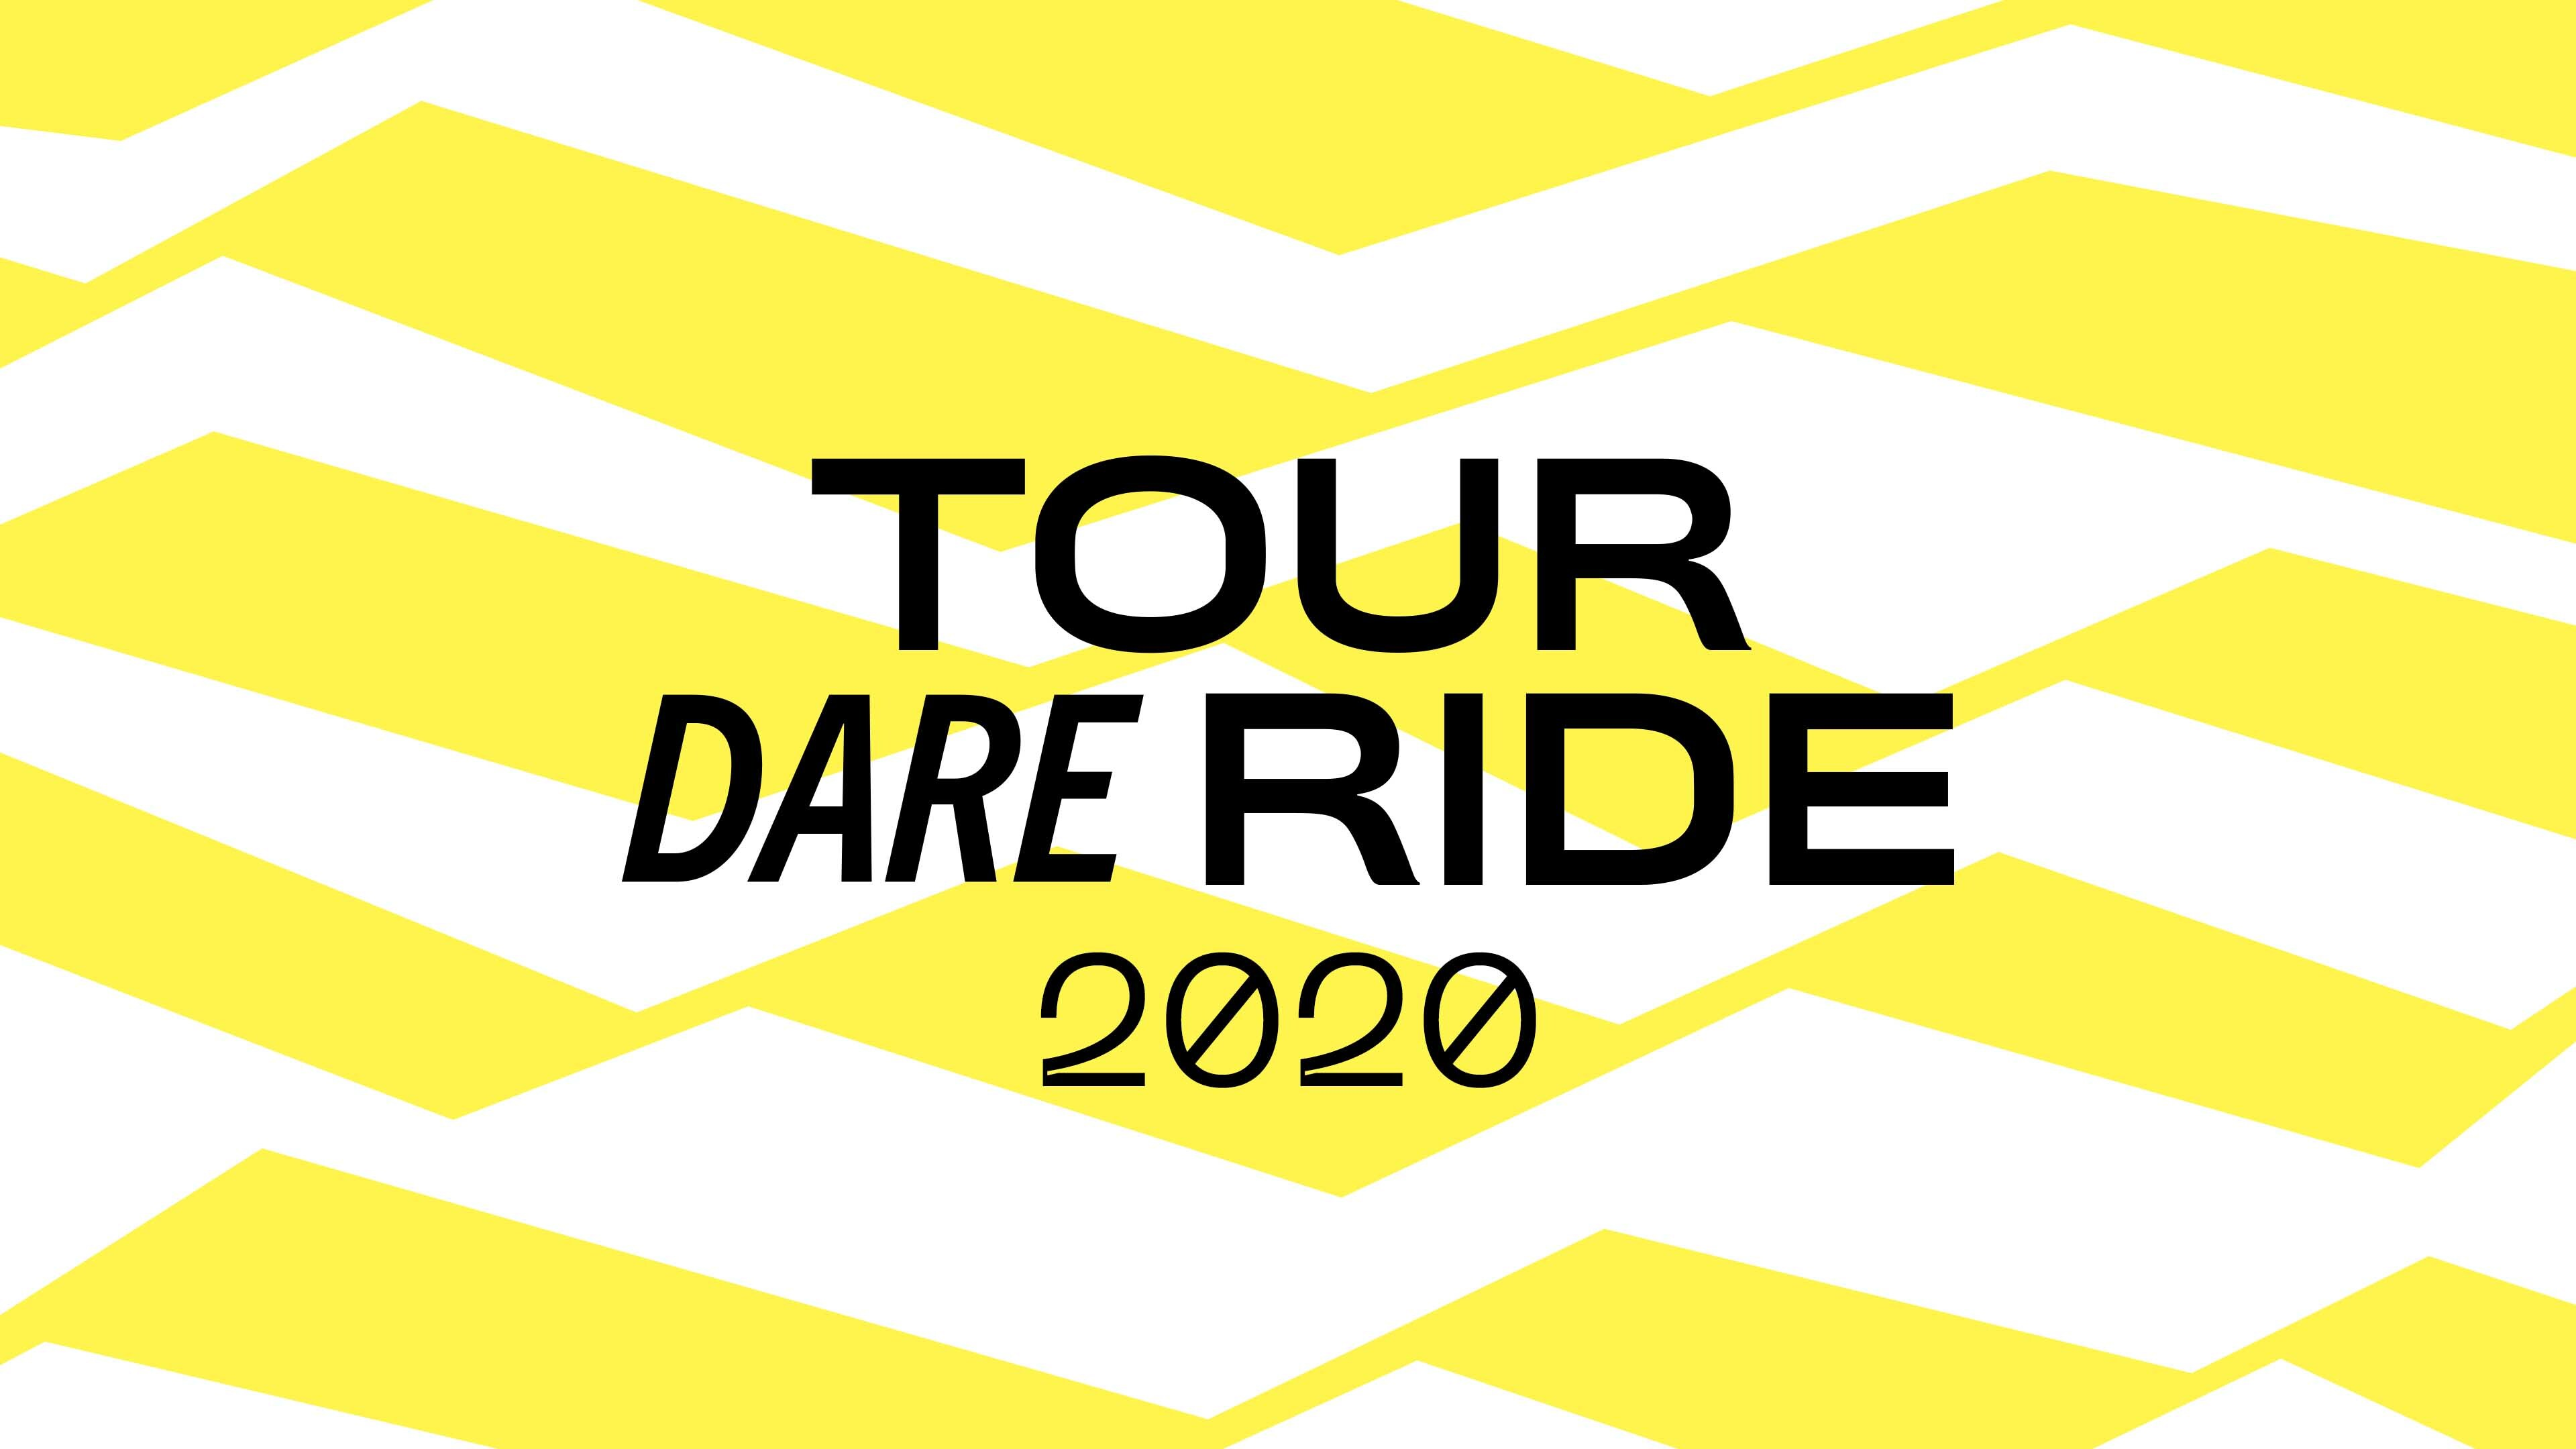 tour dare ride 2020